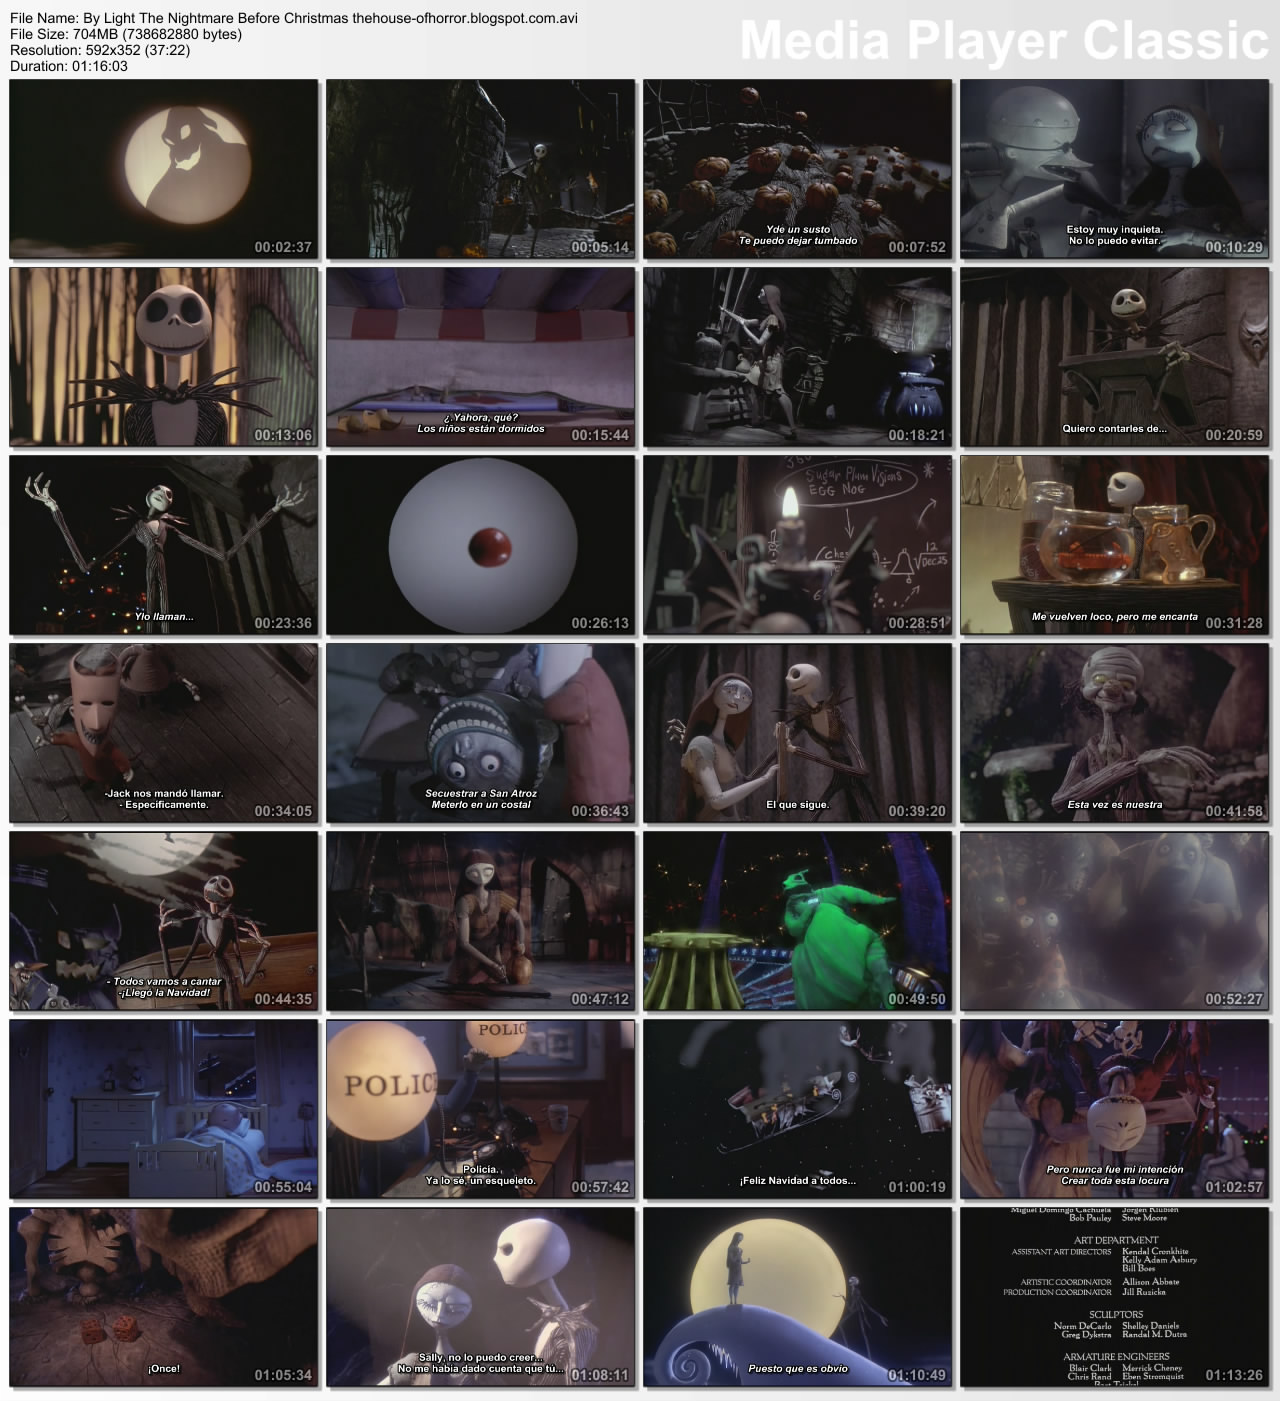 The nightmare before christmas dvdrip xvid dts dragonripper624 ...